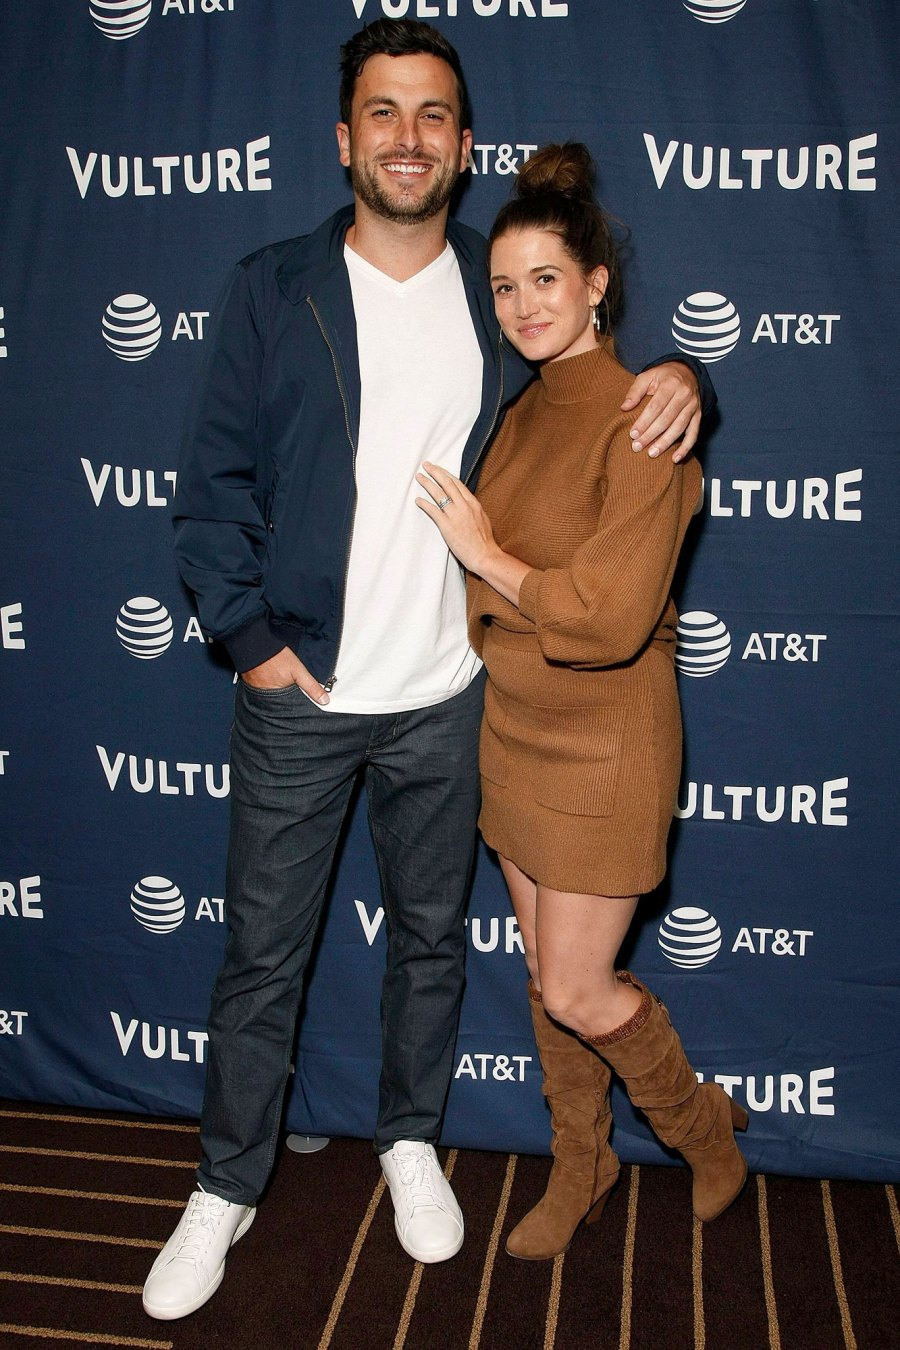 Everything Jade Roper and Tanner Tolbert Said About Expanding Their Family Ahead of Baby 3